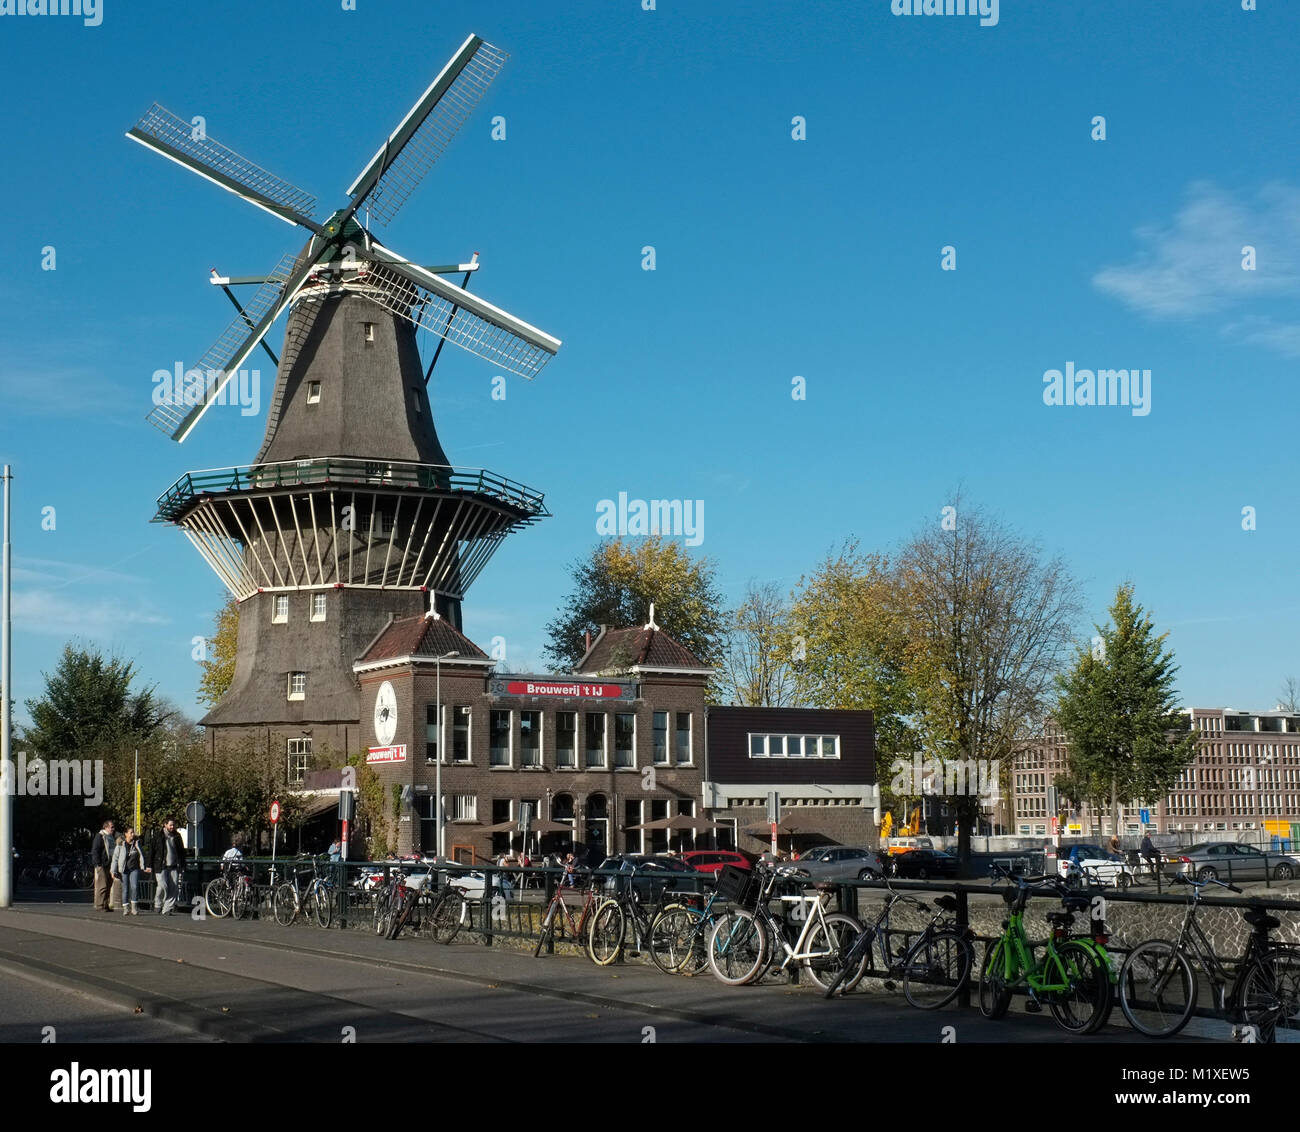 general view of De Gooyer Windmill and Brouwerij 't IJ, amtserdam, netherlands - Stock Image